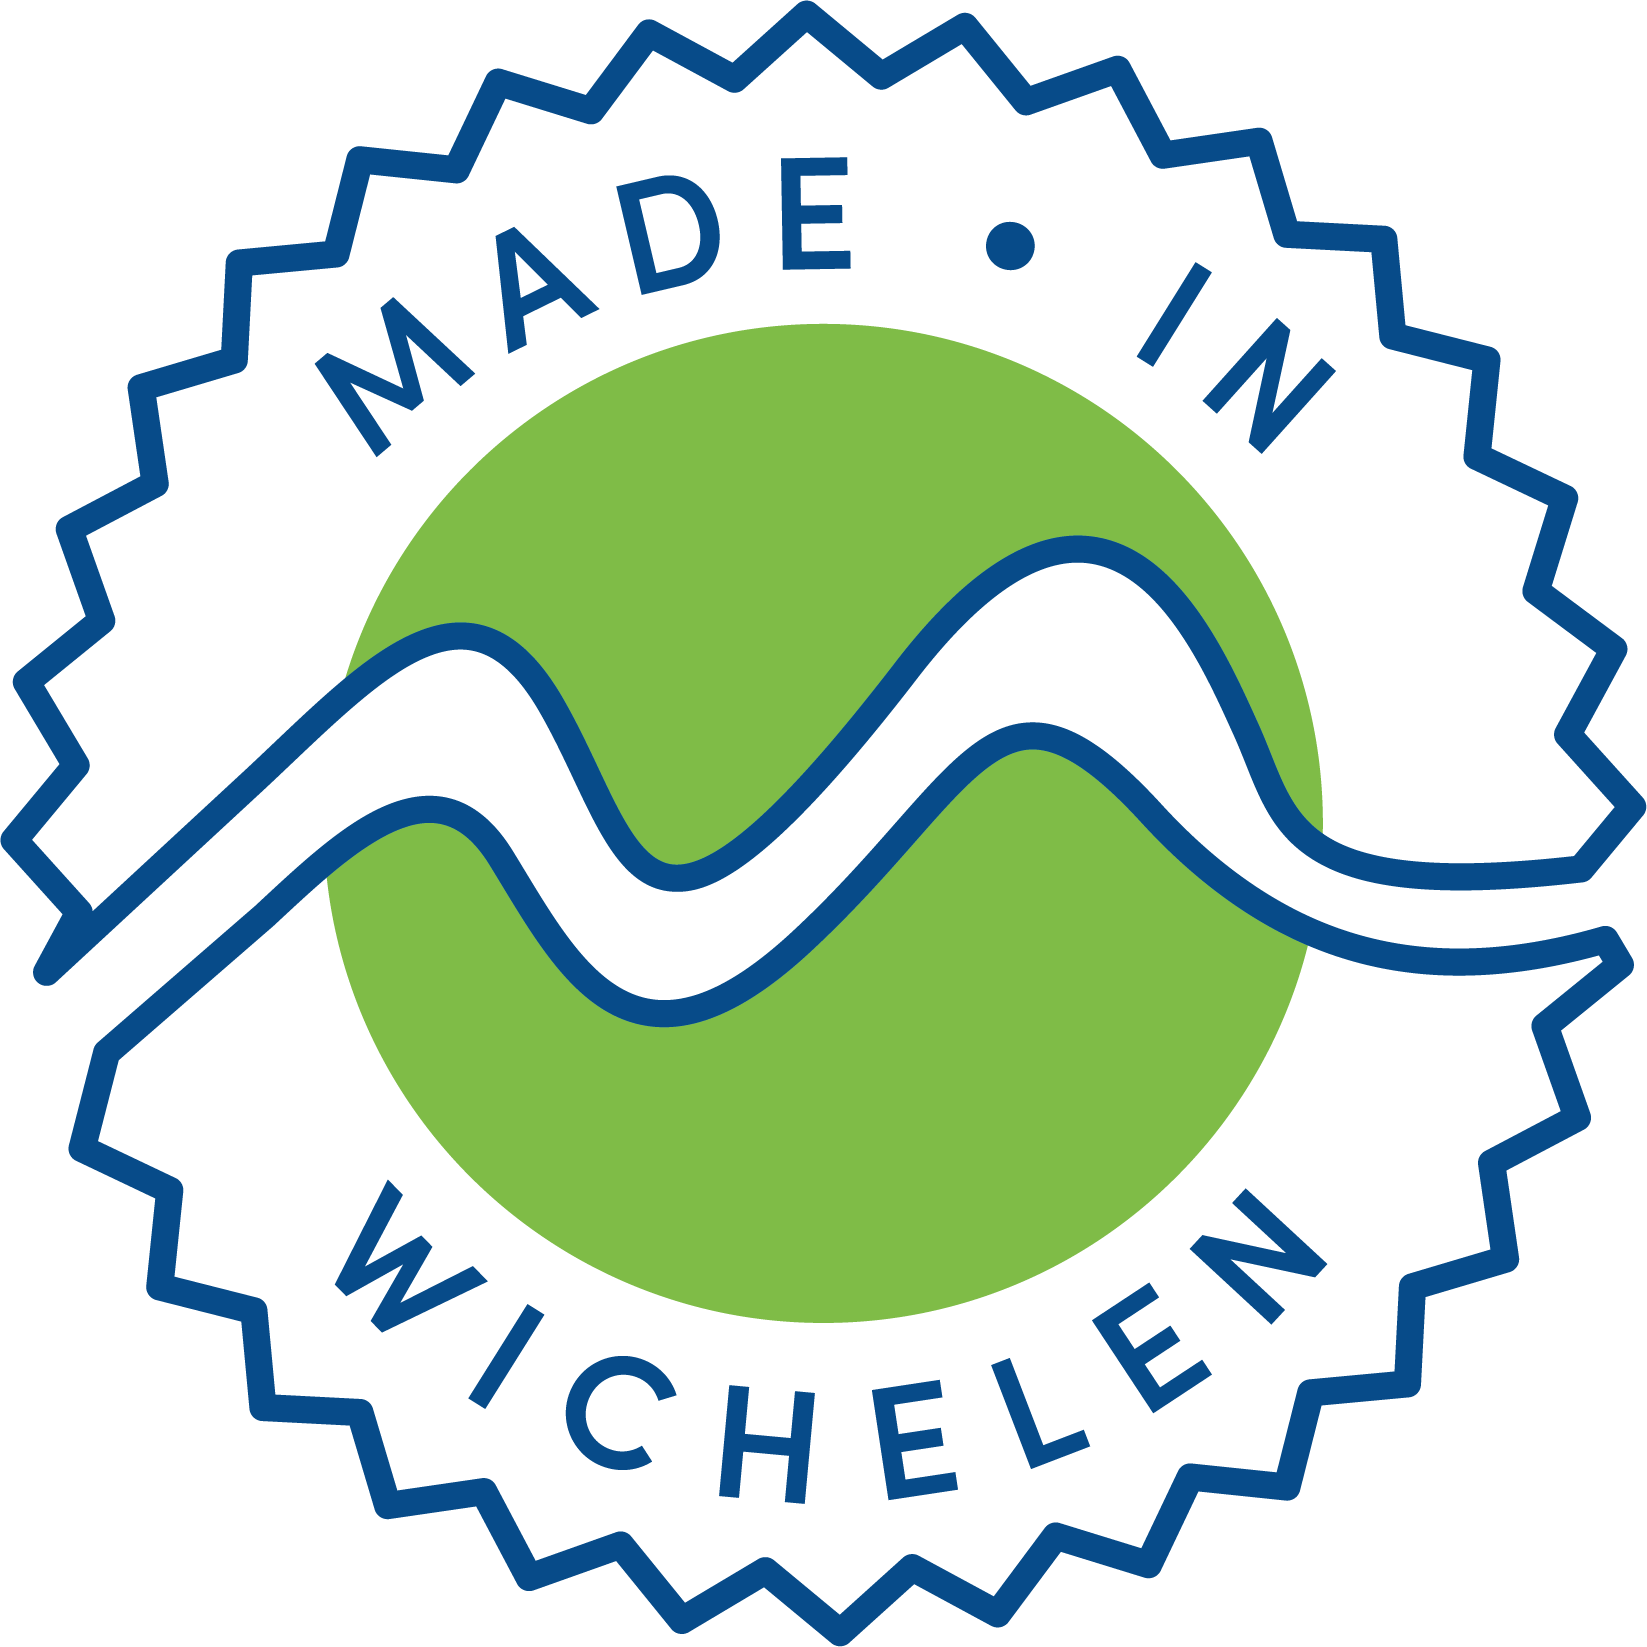 Made in Wichelen